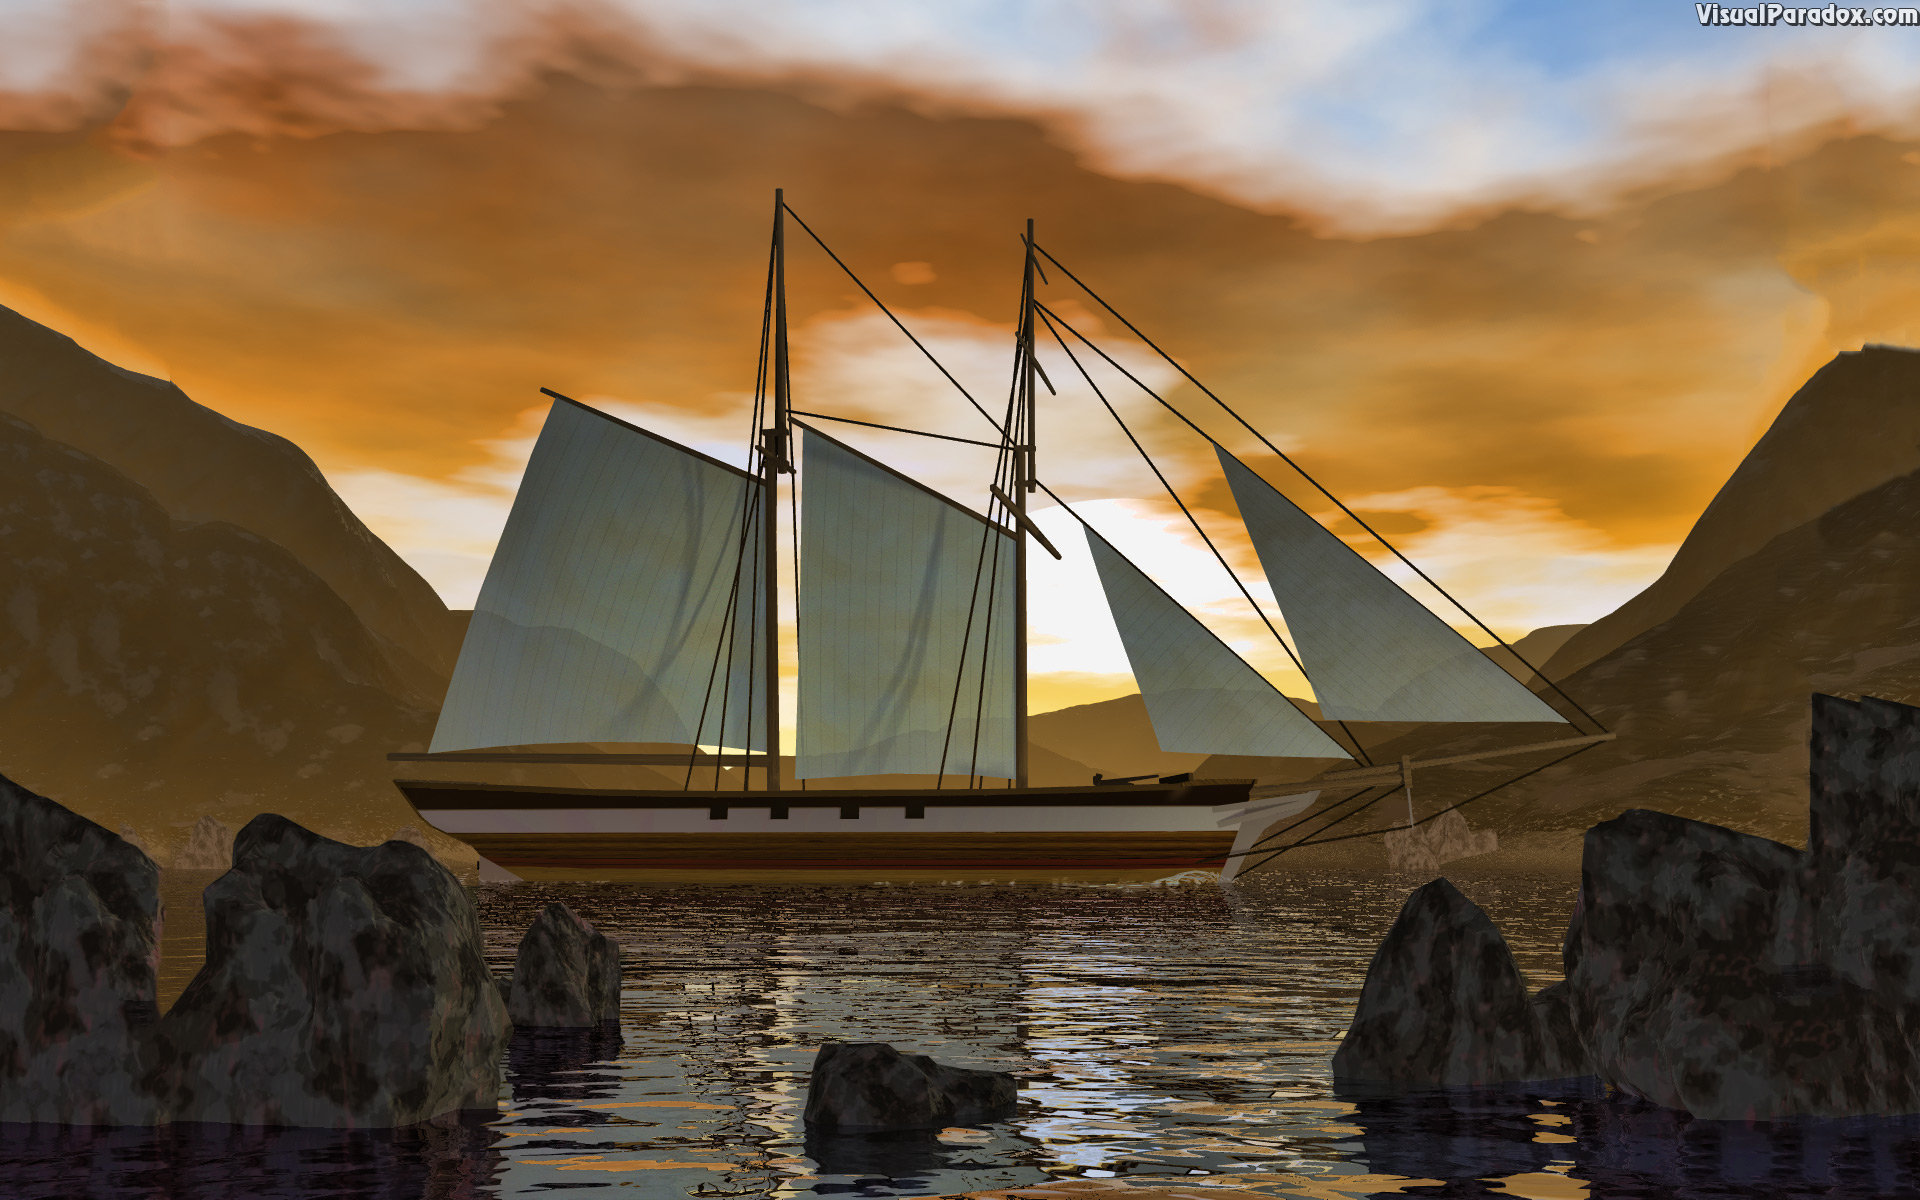 ship, boat, sail, ocean, sea, water, waves, sunset, ripples, sailing, sailboat, sails, 3d, wallpaper